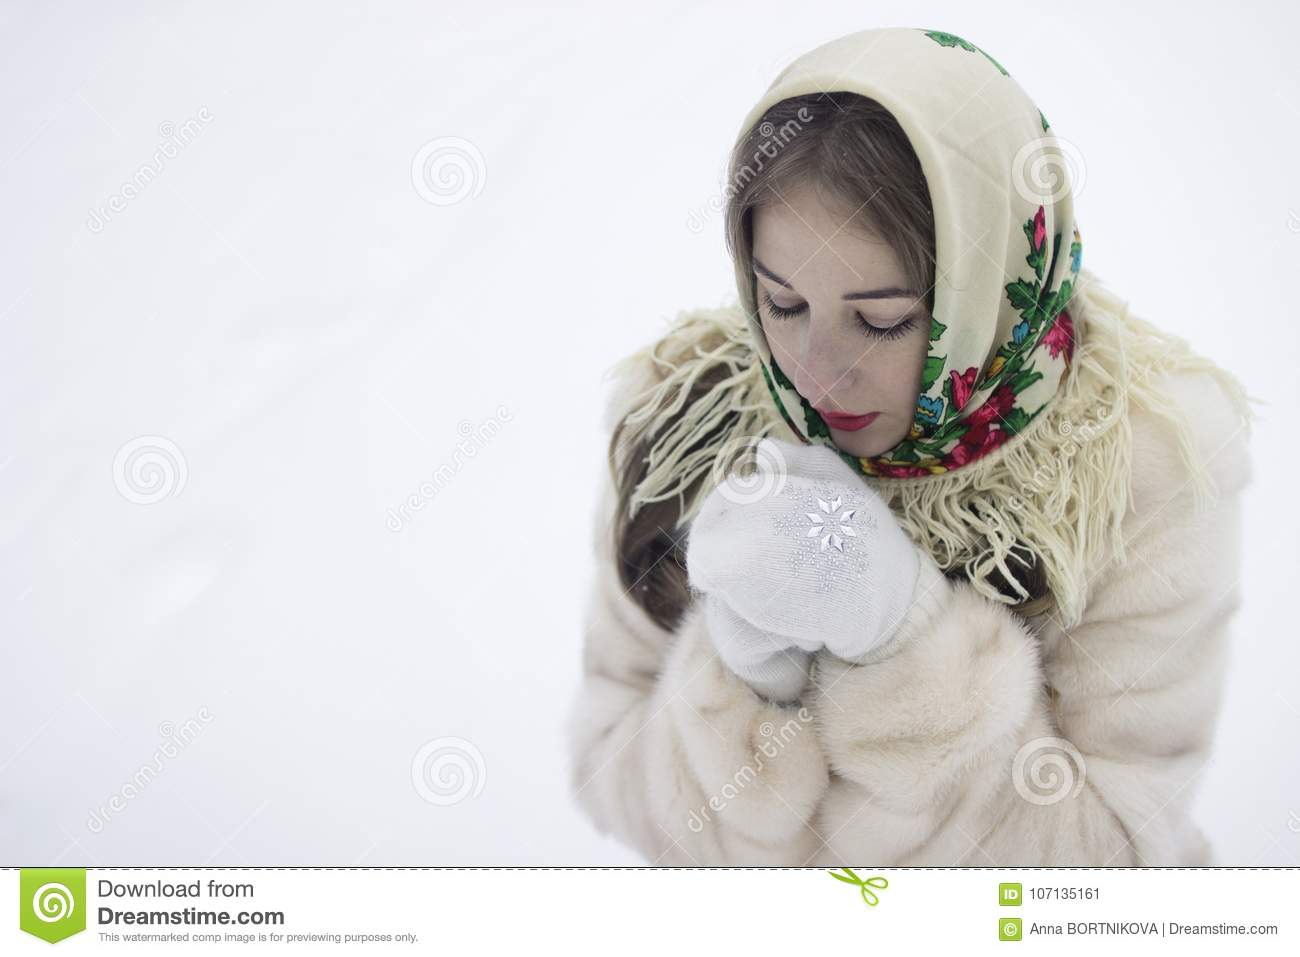 Frozen hands warms your breathing